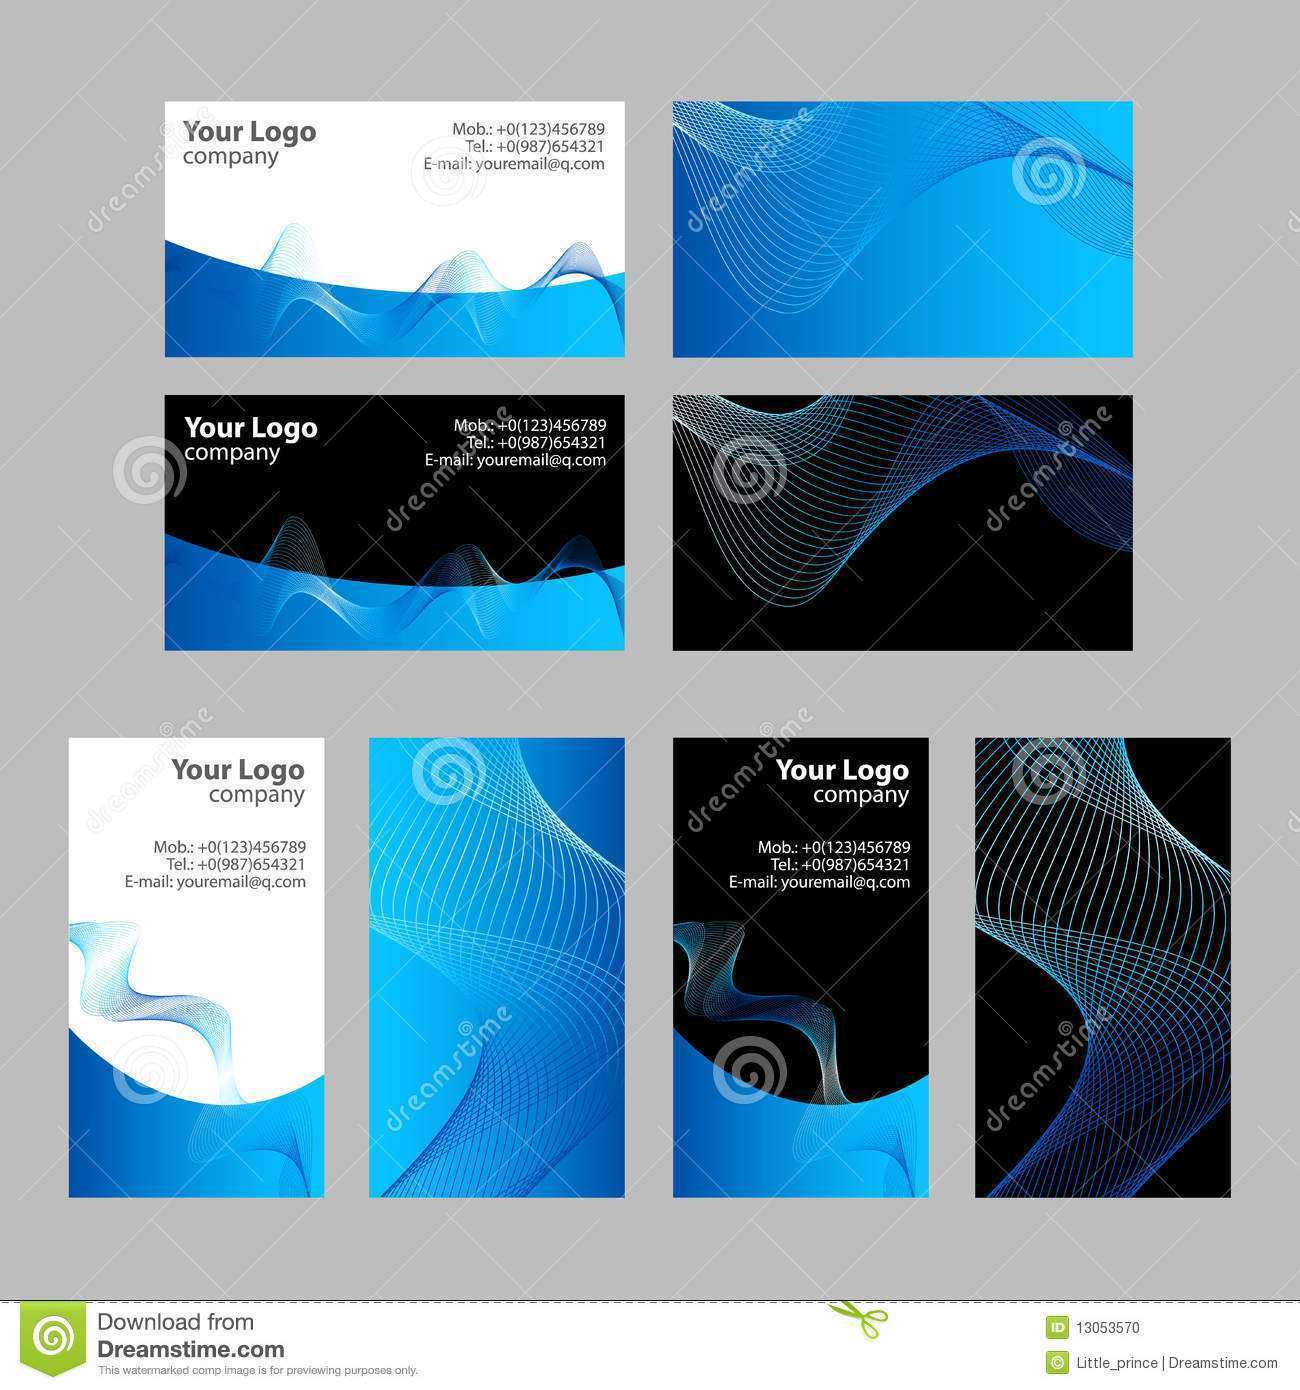 74 Online Back Of Business Card Template in Photoshop for Back Of Business Card Template